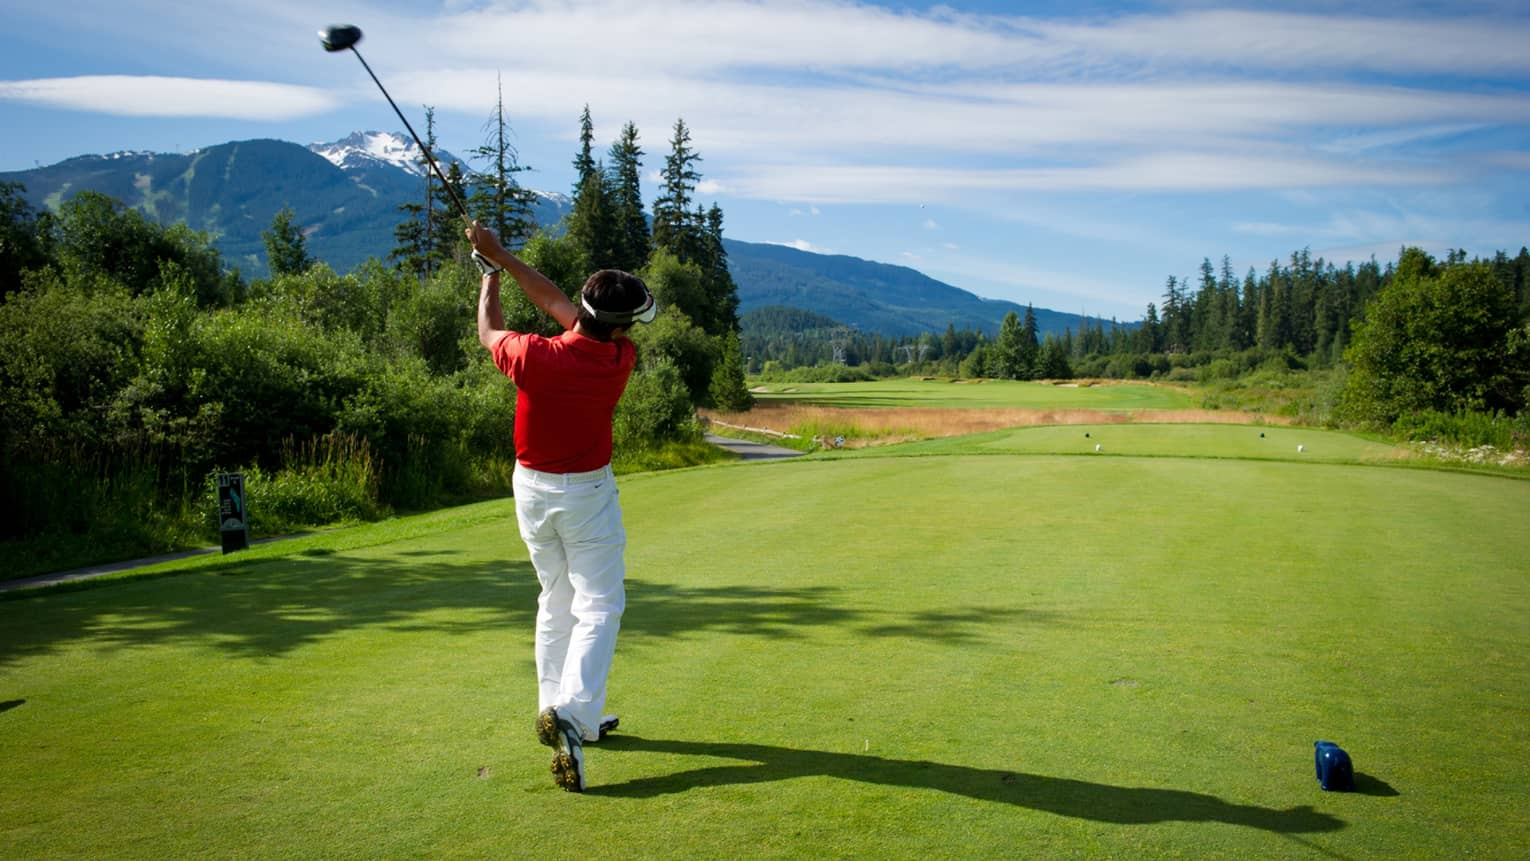 Back view of man swinging golf club on green, mountains in distance